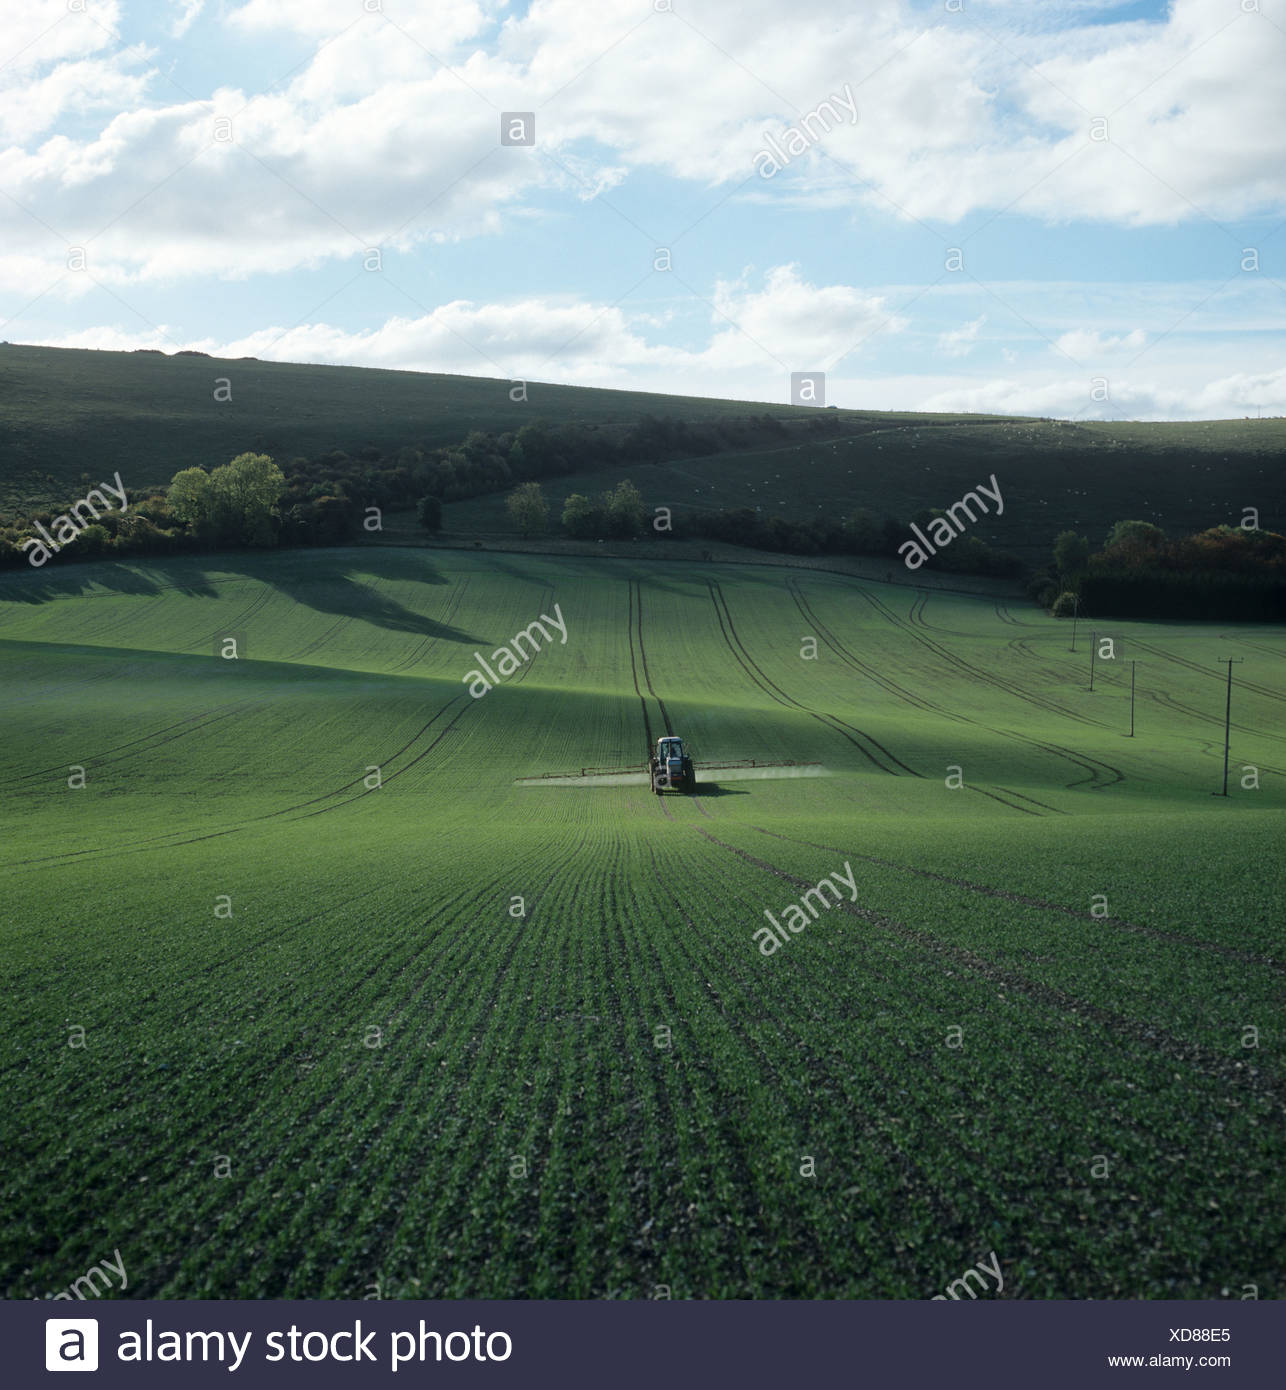 Tractor with trailed boom sprayer spraying a young wheat crop in autumn - Stock Image